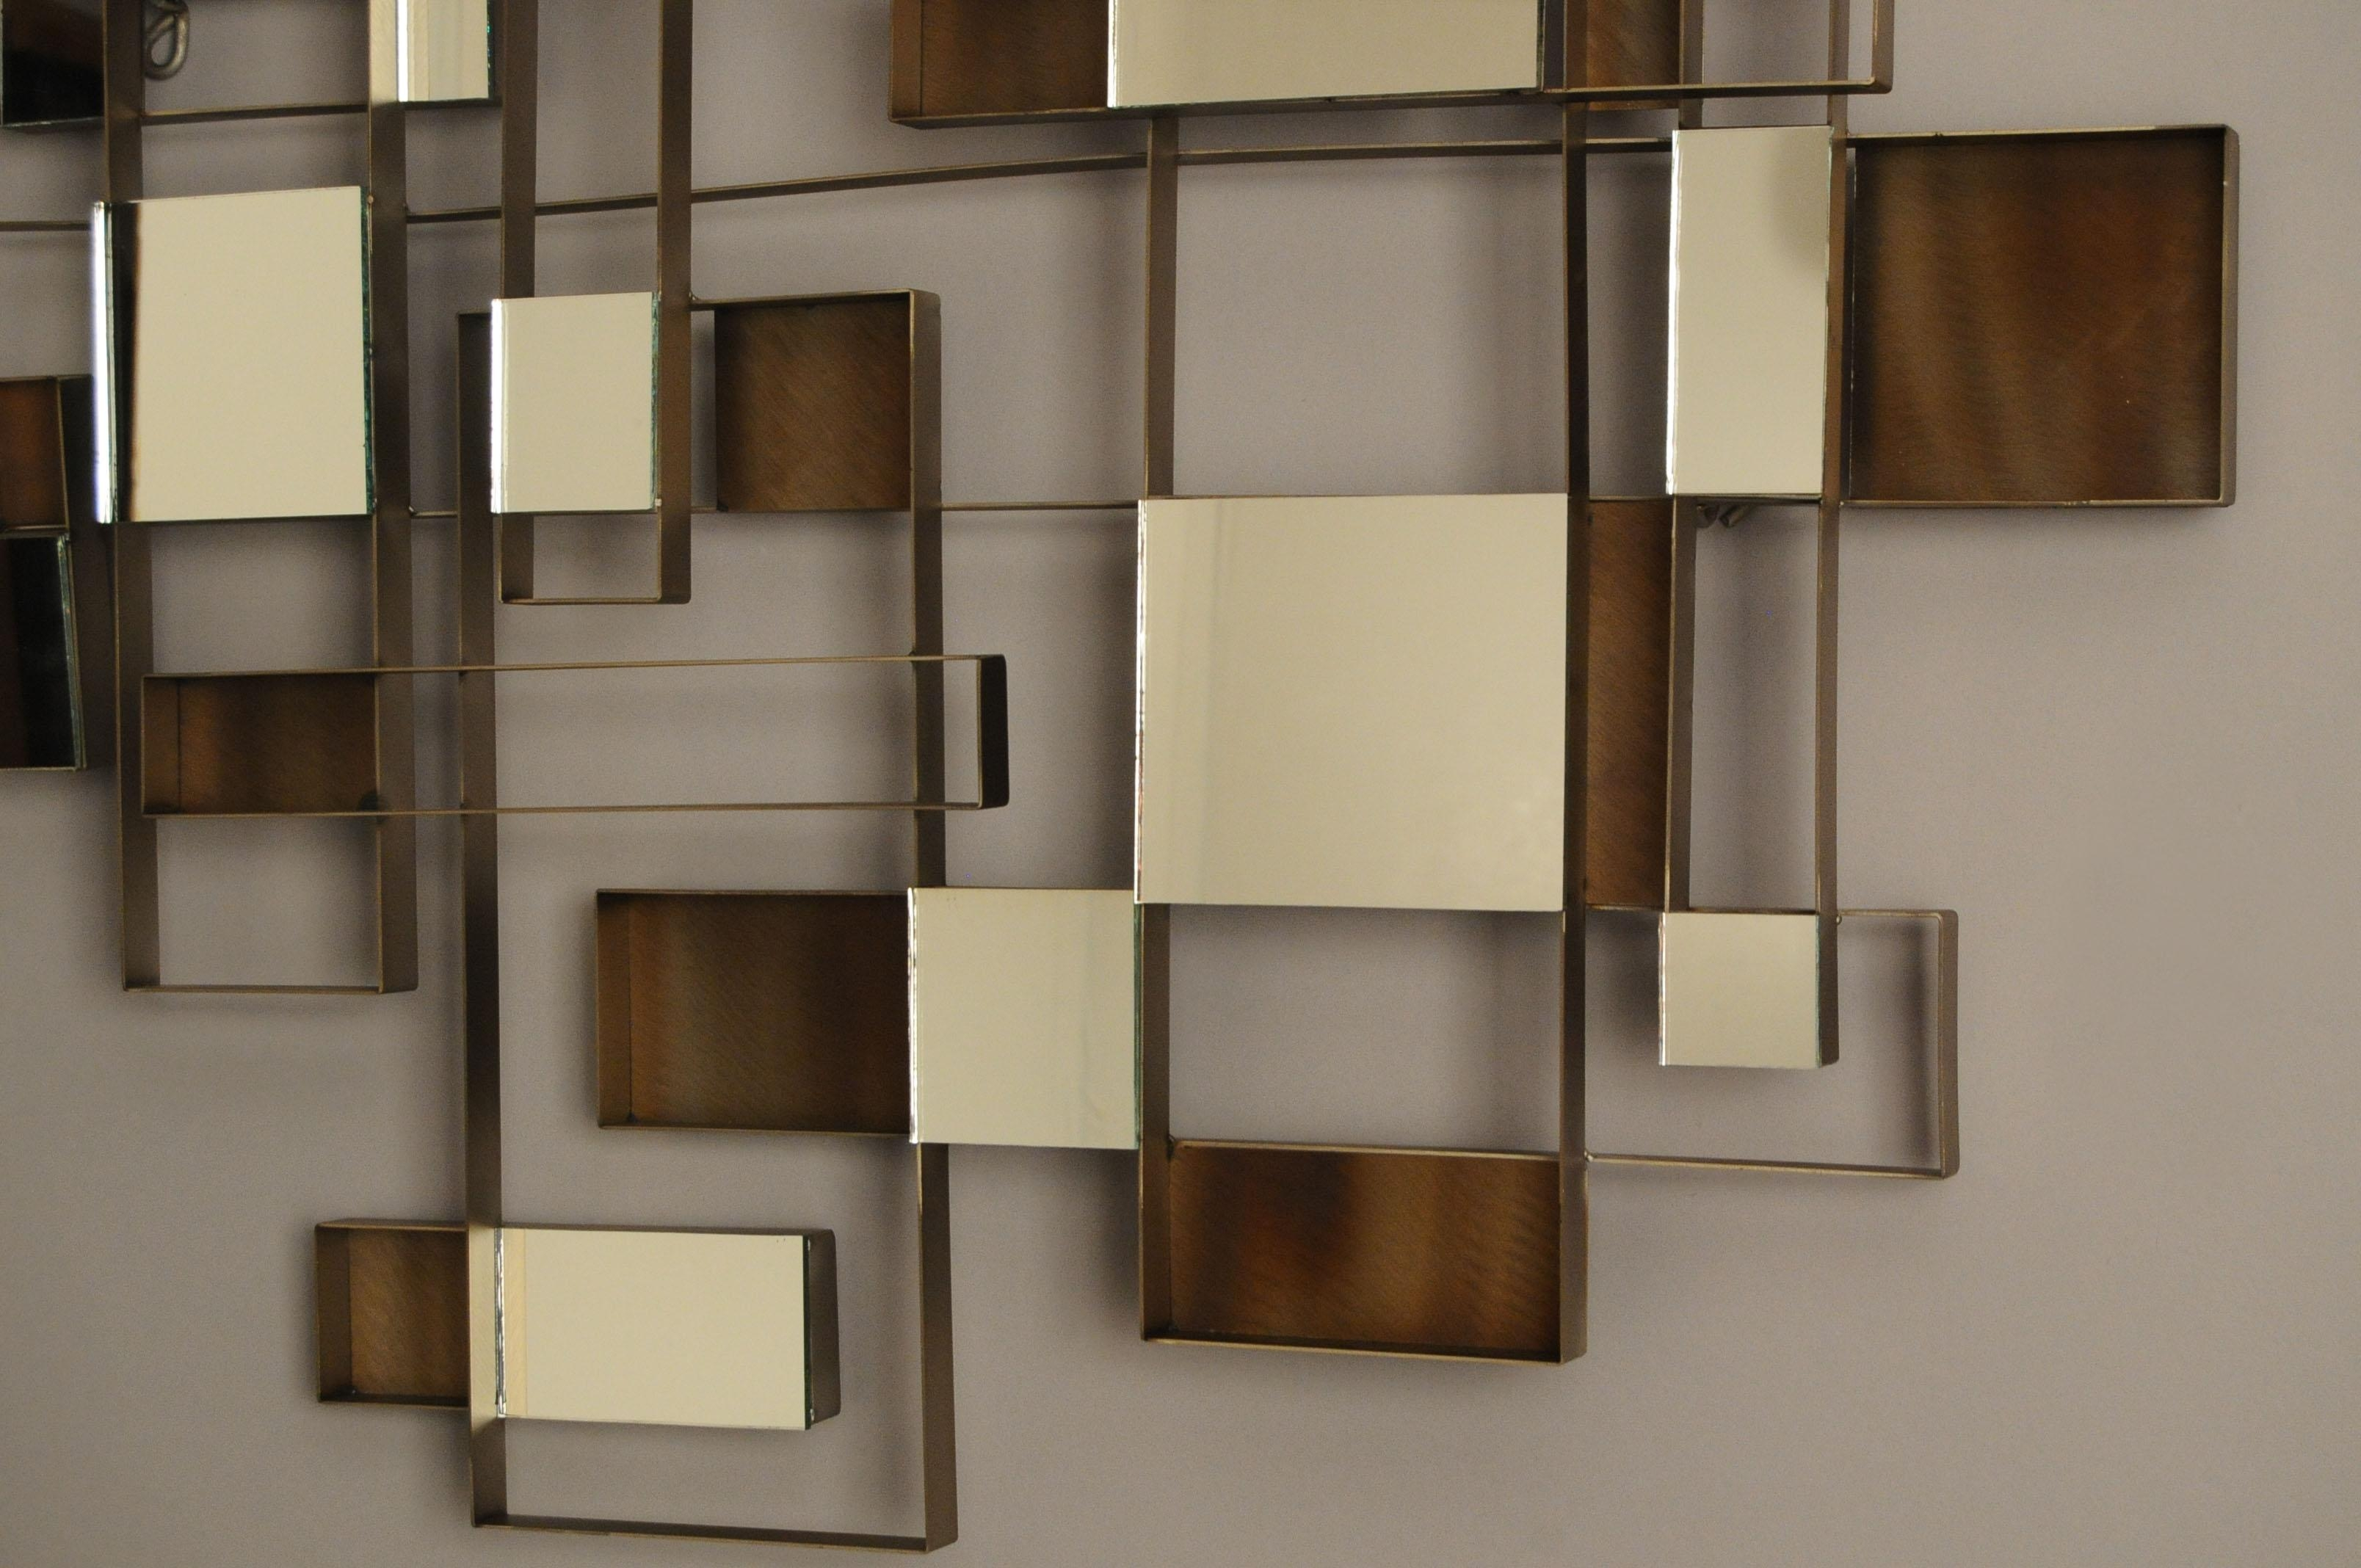 Wall Art Designs: Awesome Wall Art Mirror With Abstract Pattern With Contemporary Mirror Wall Art (Image 17 of 20)